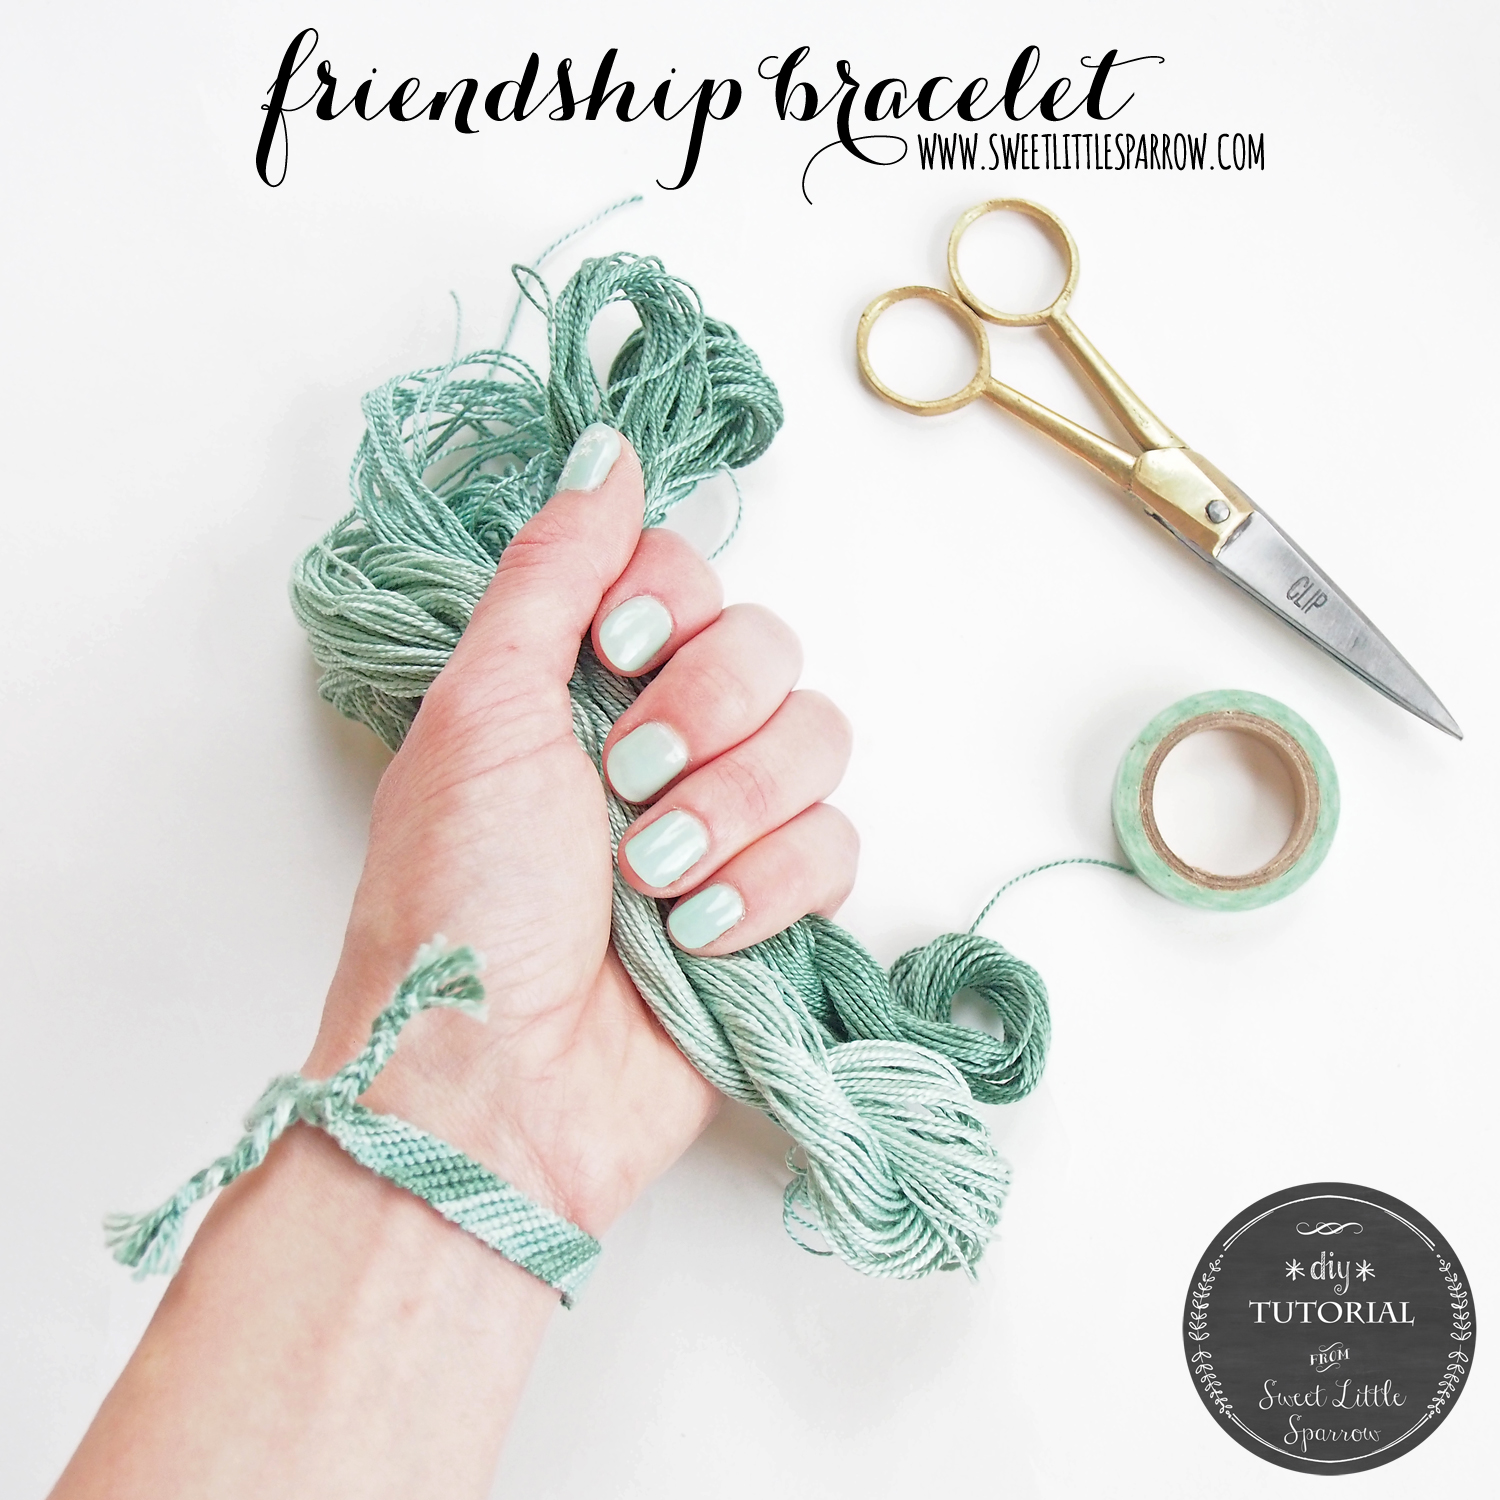 Learn How To Make A Diagonal Stripe Friendship Bracelet